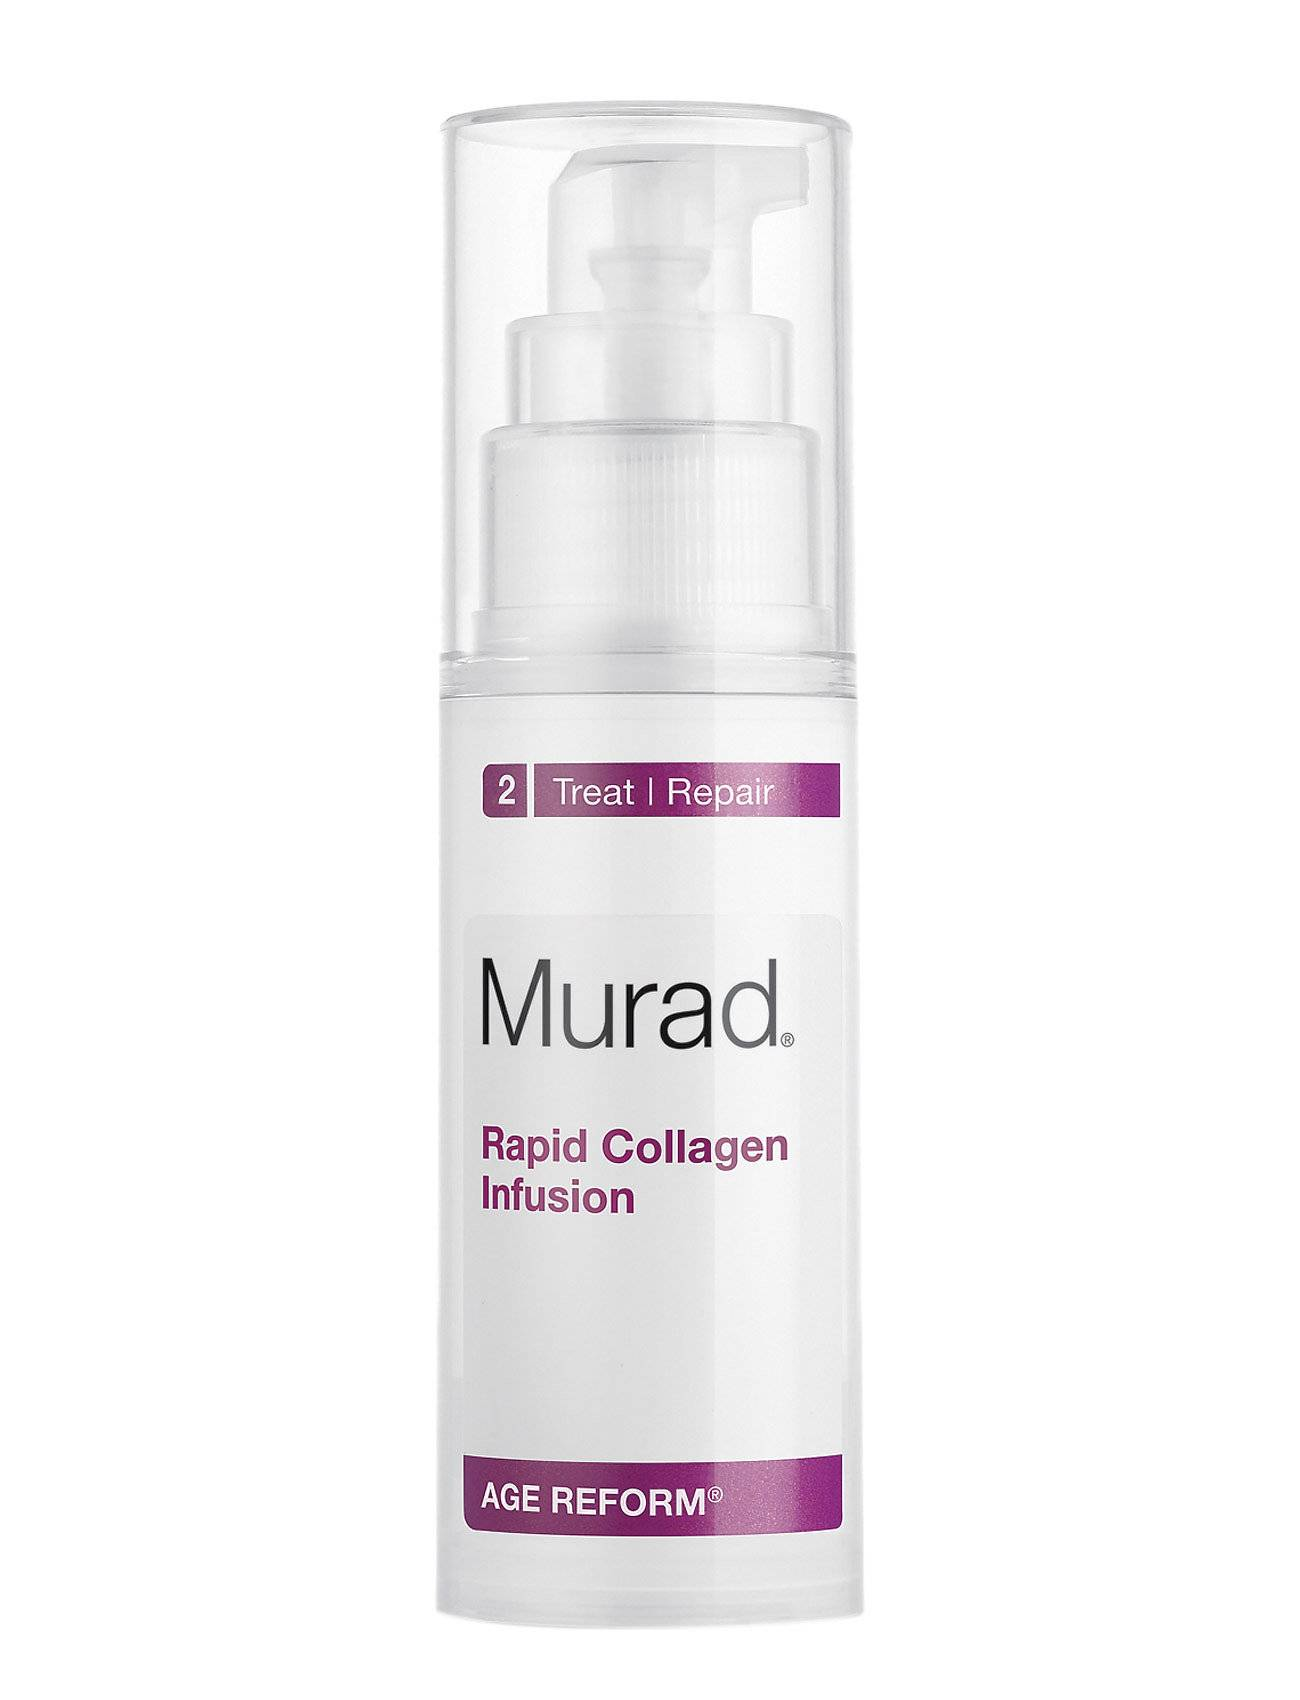 Murad Age Reform Rapid Collagen Infusion